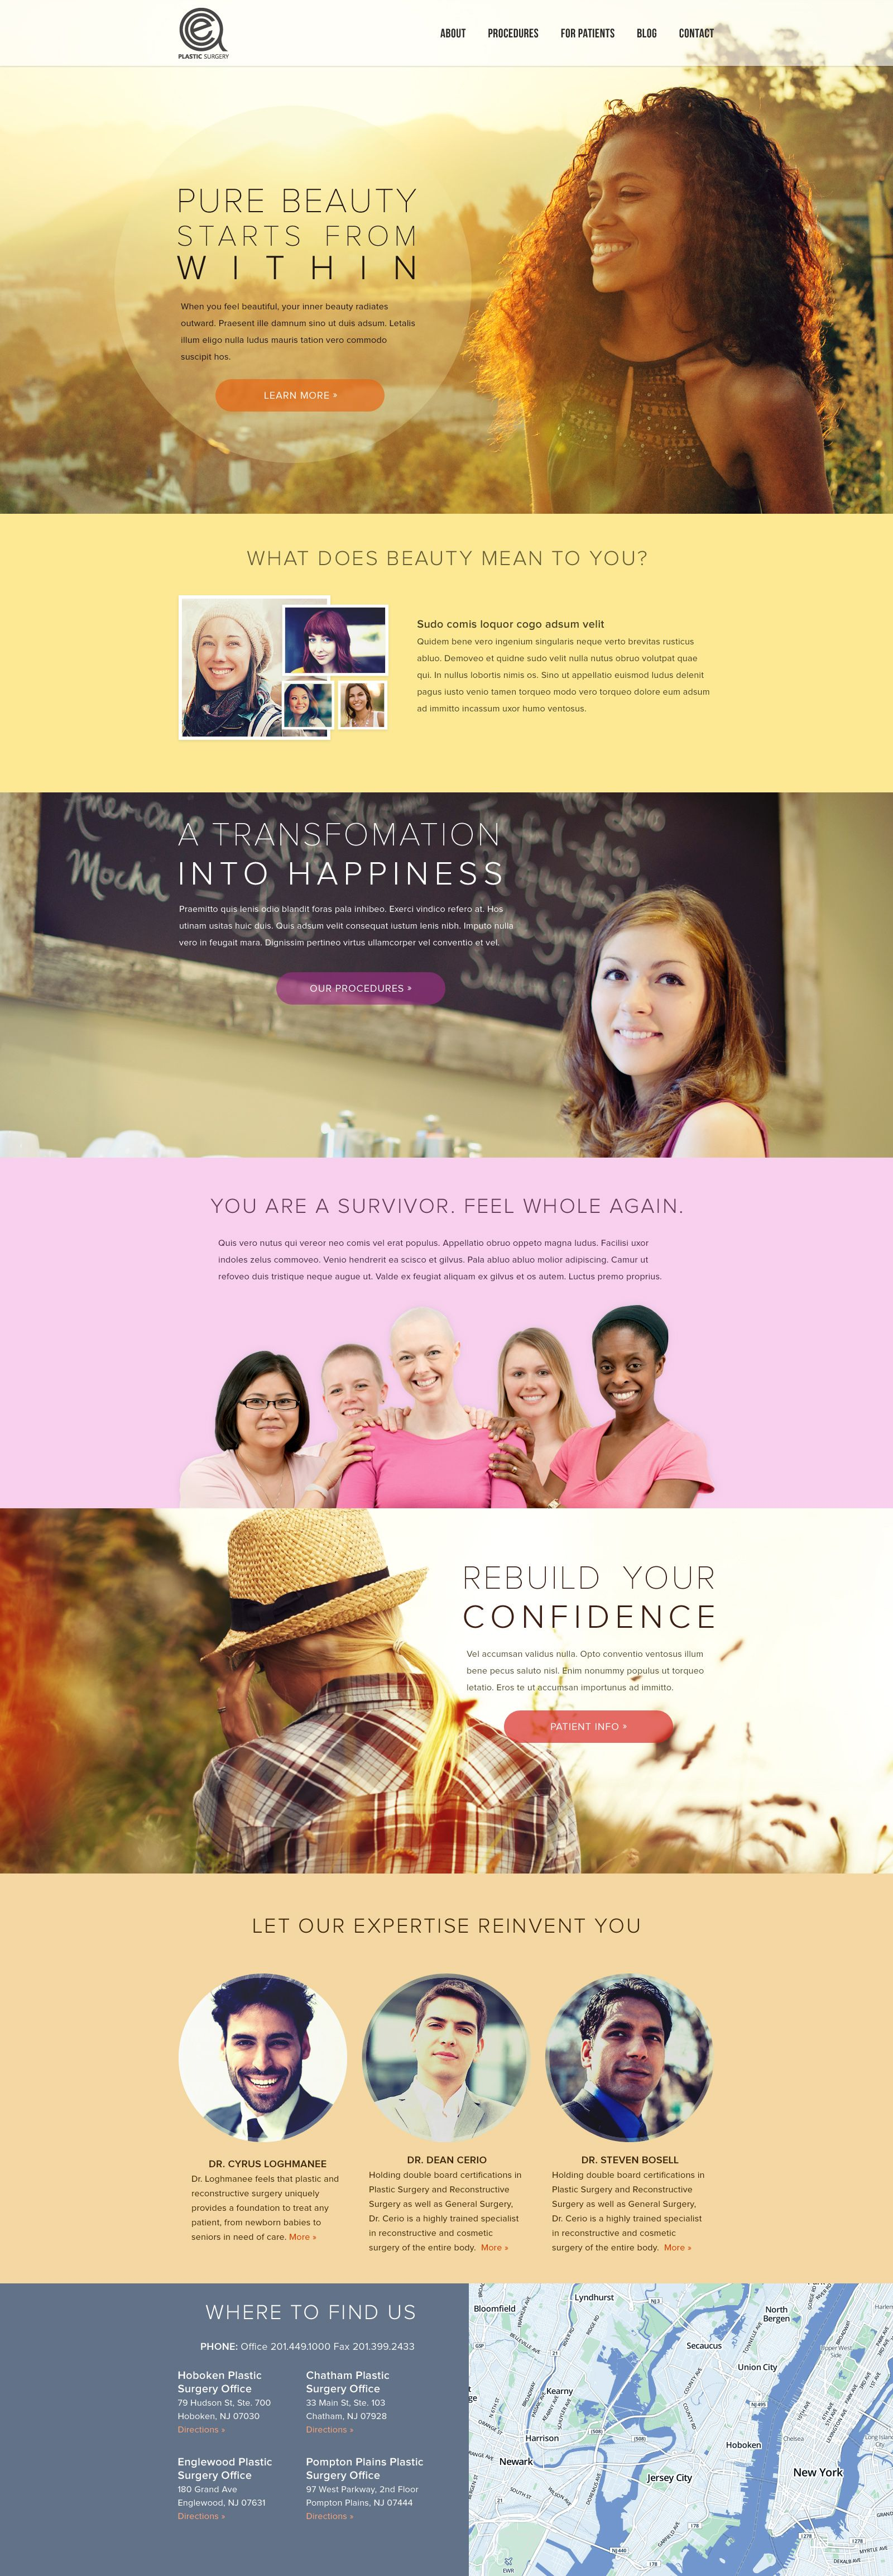 Plastic Surgeon site redesign by Jason Kirtley